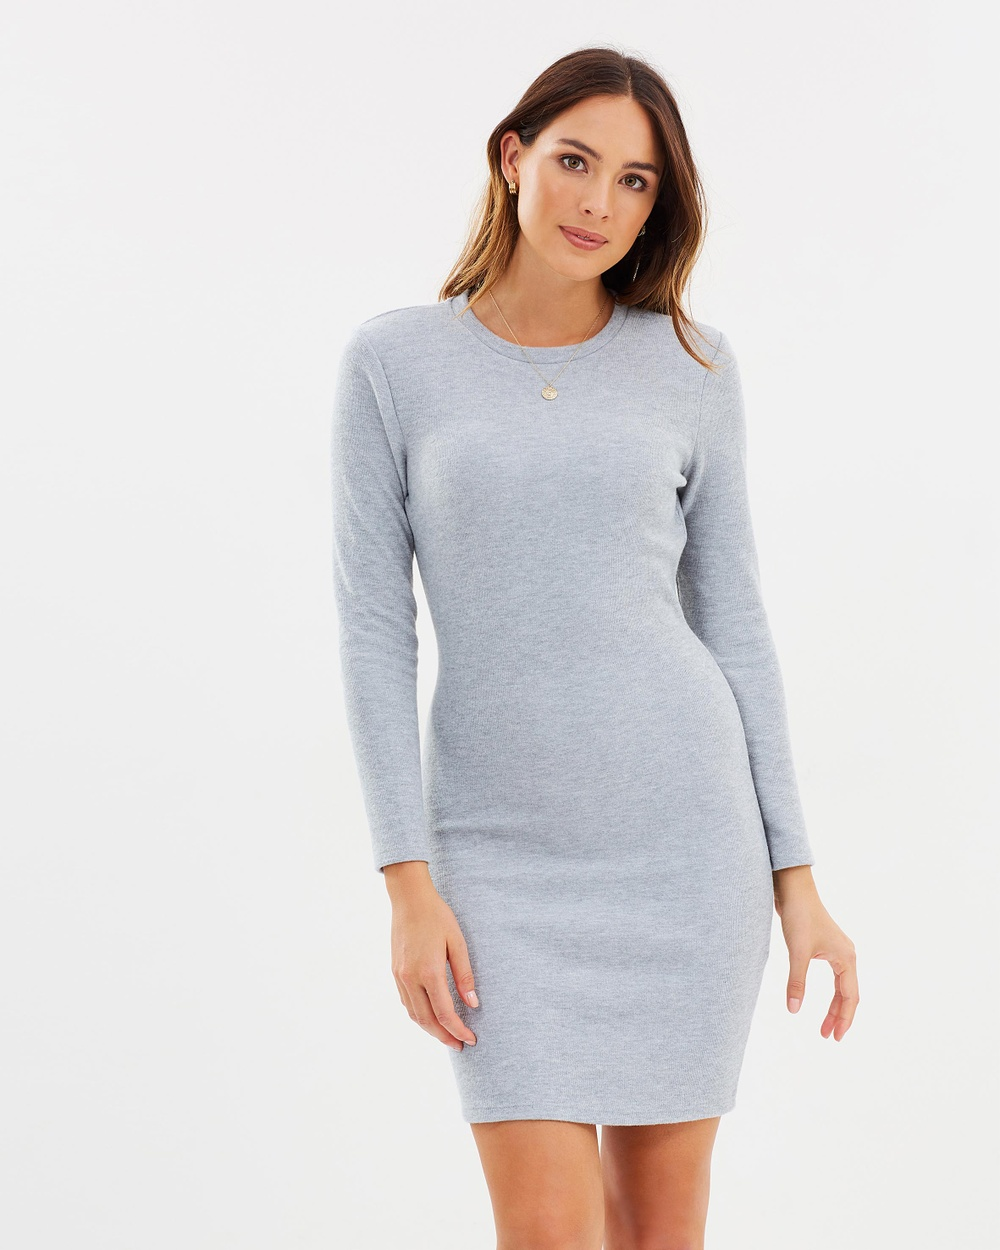 M.N.G Mico Dress Dresses Grey Mico Dress